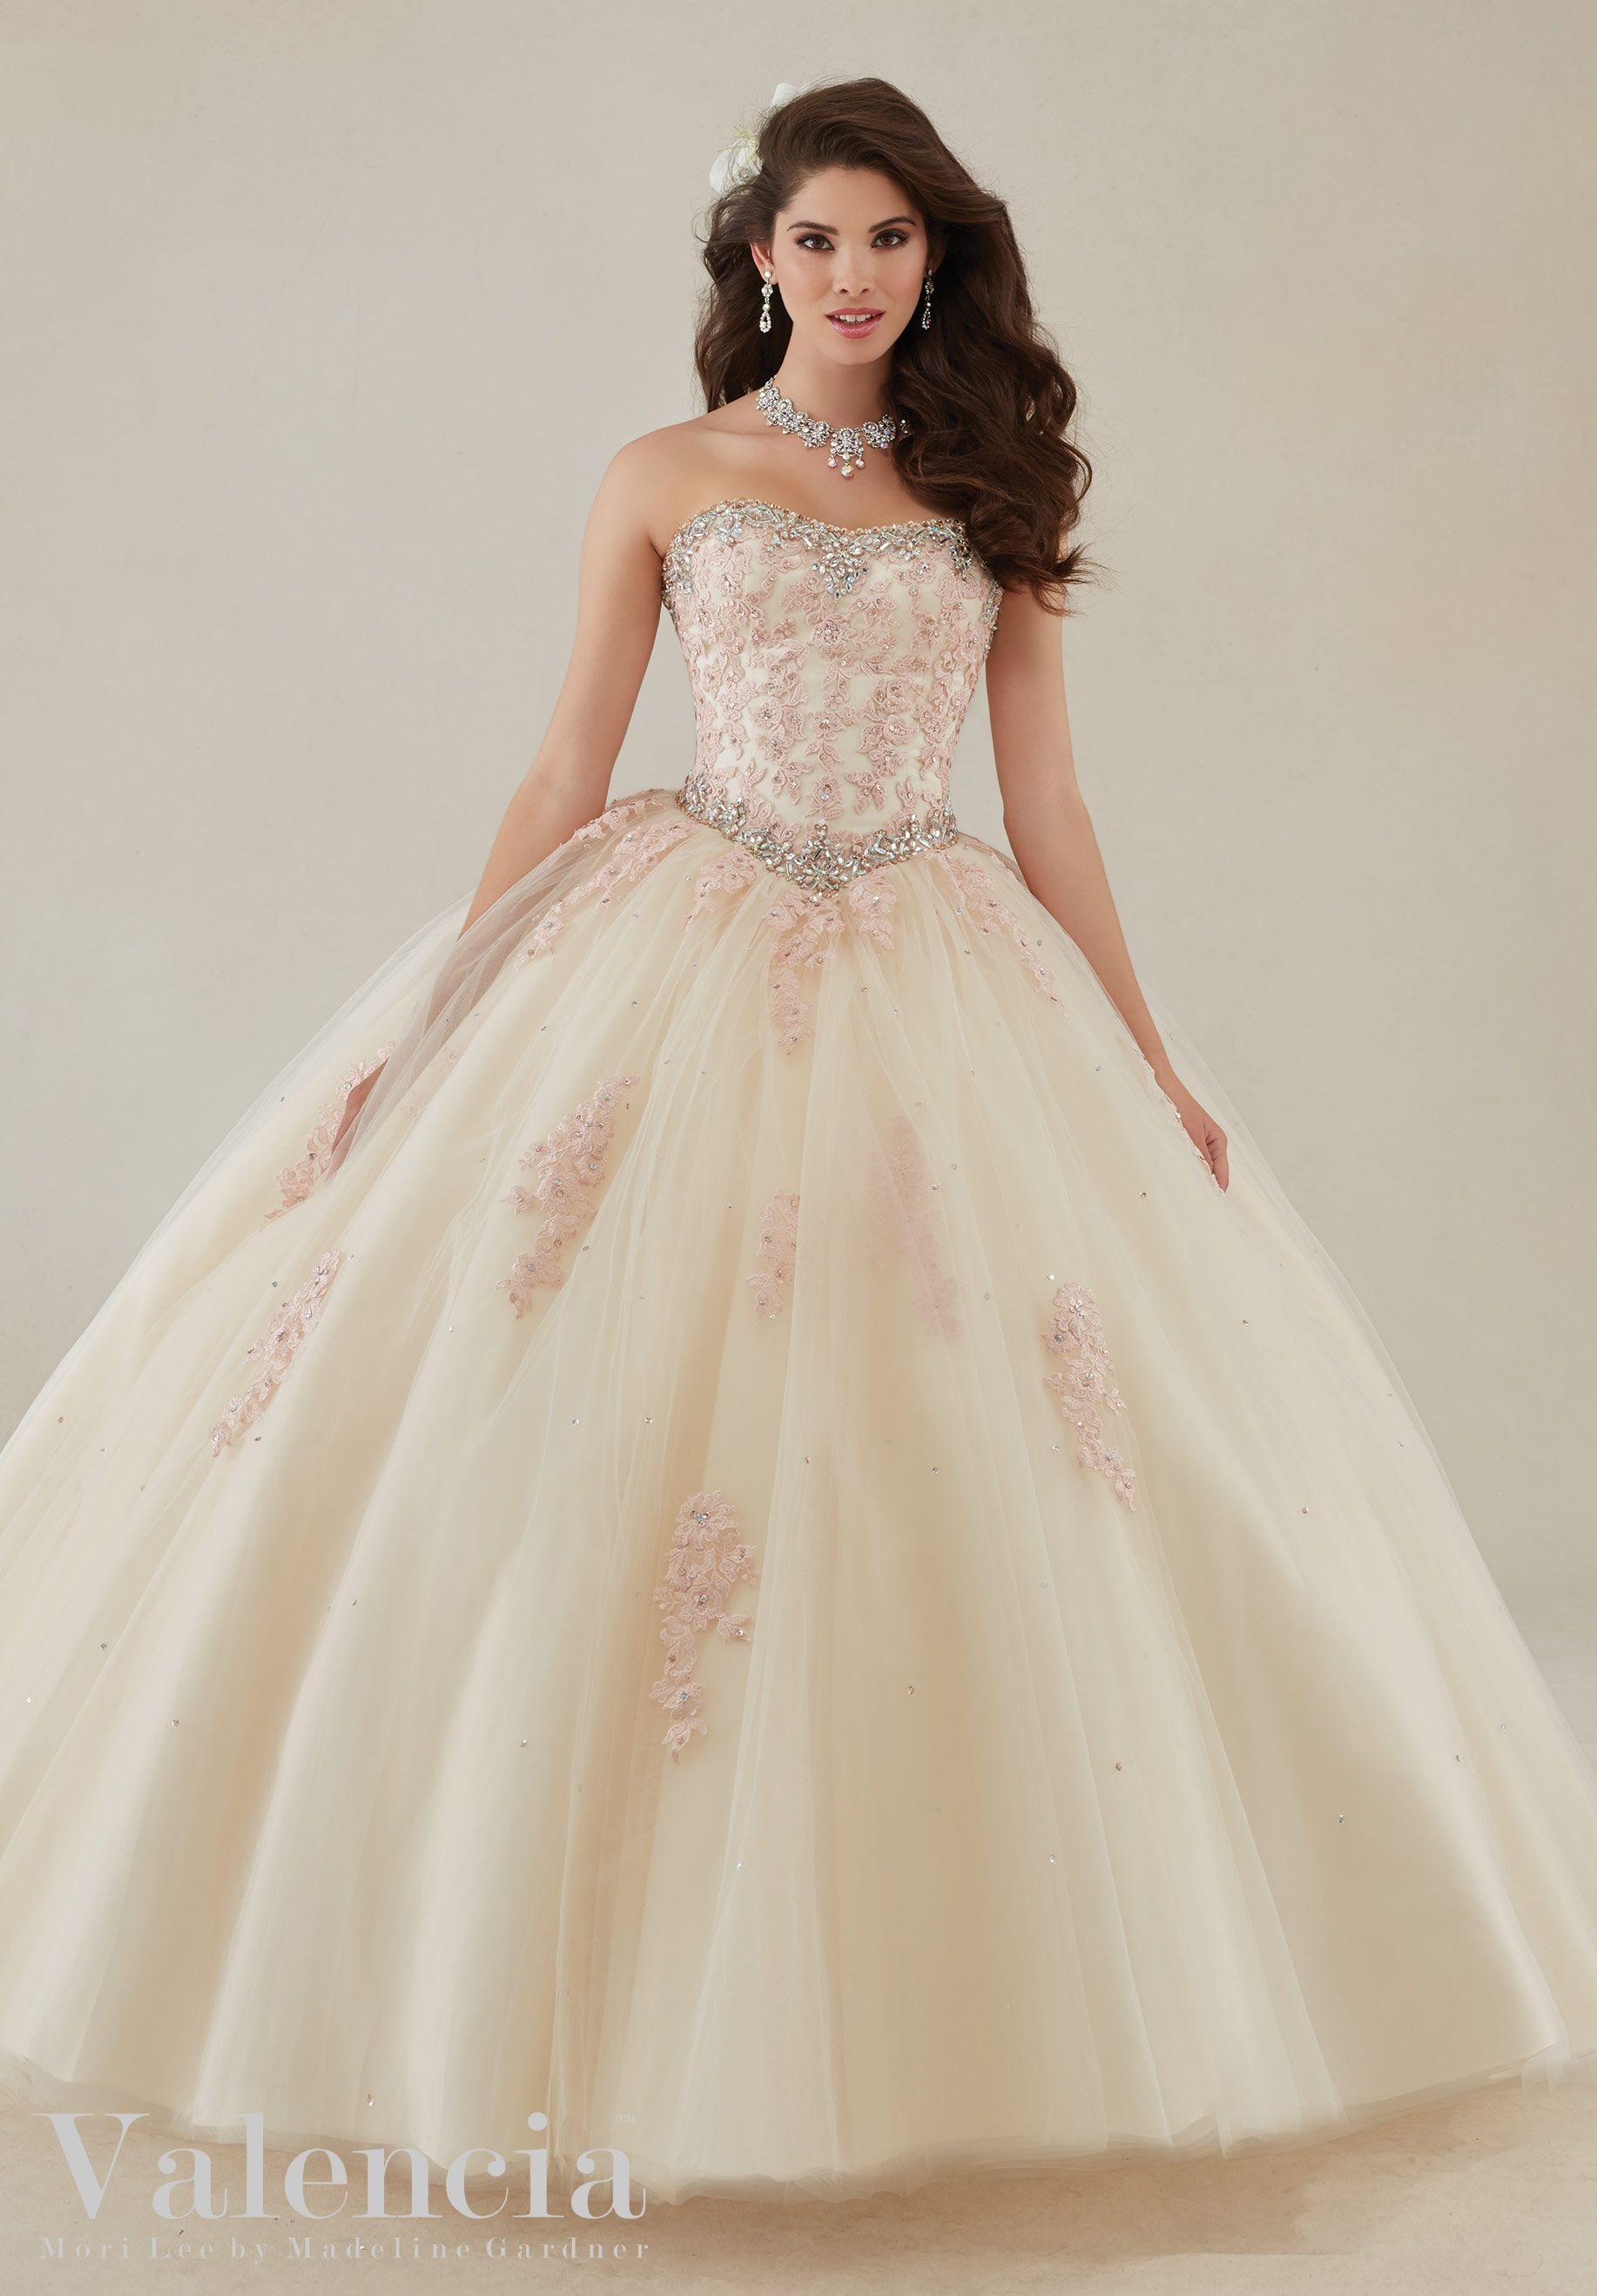 Quinceanera Dress 89086 Lace Appliqu s and Beading on a Tulle Ball ...